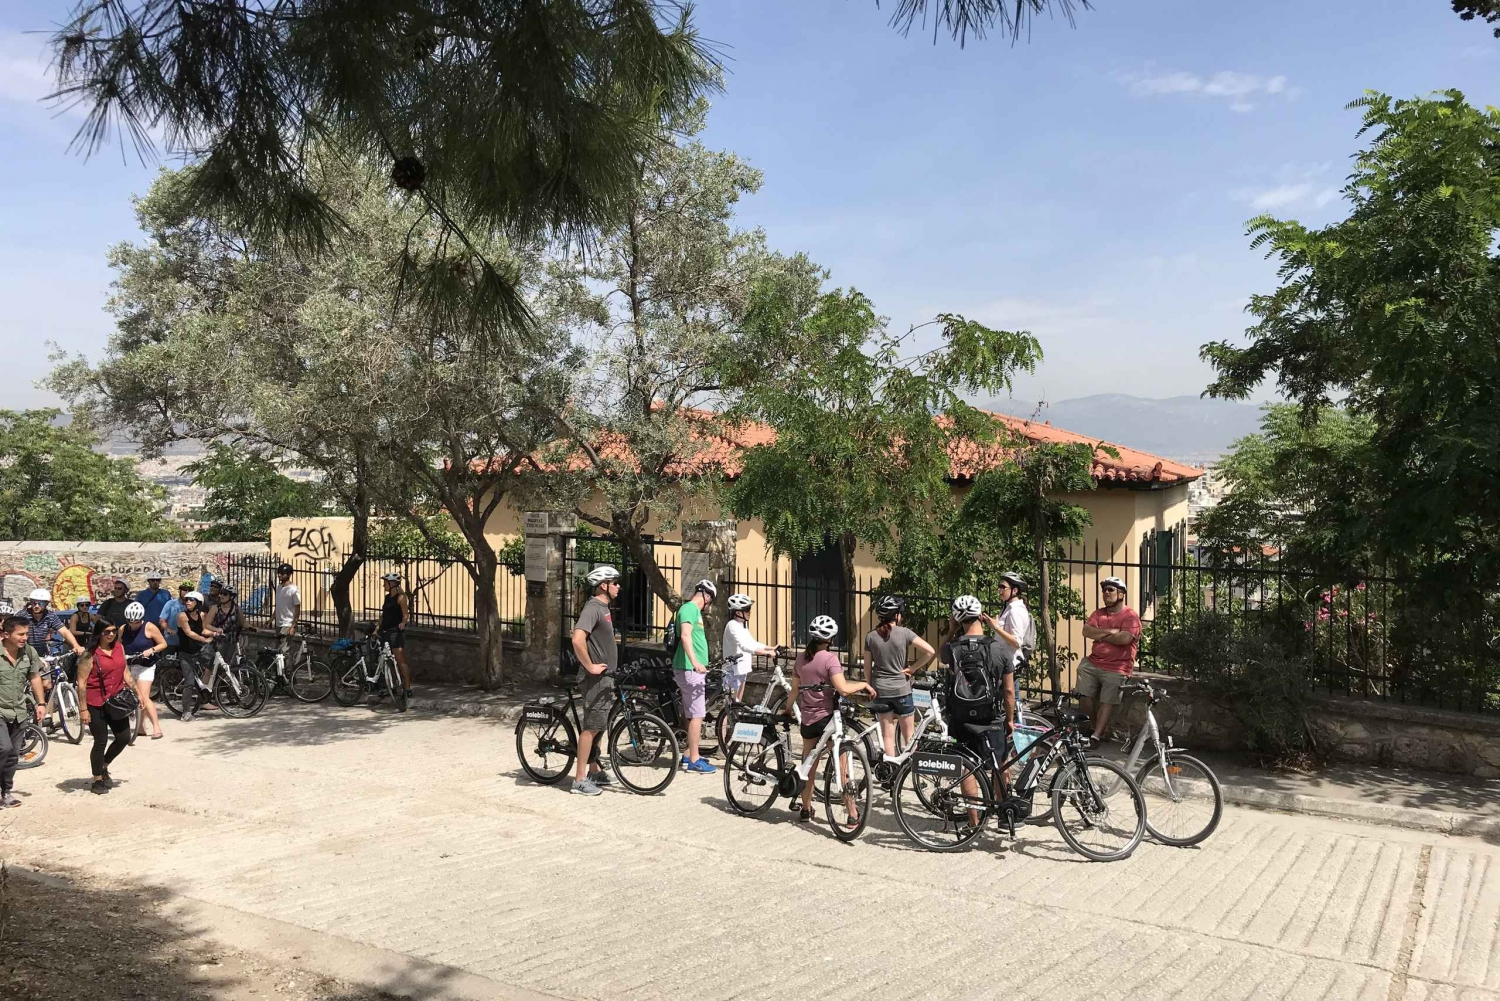 Acropolis and Athens Classic Tour on an Electric Bicycle